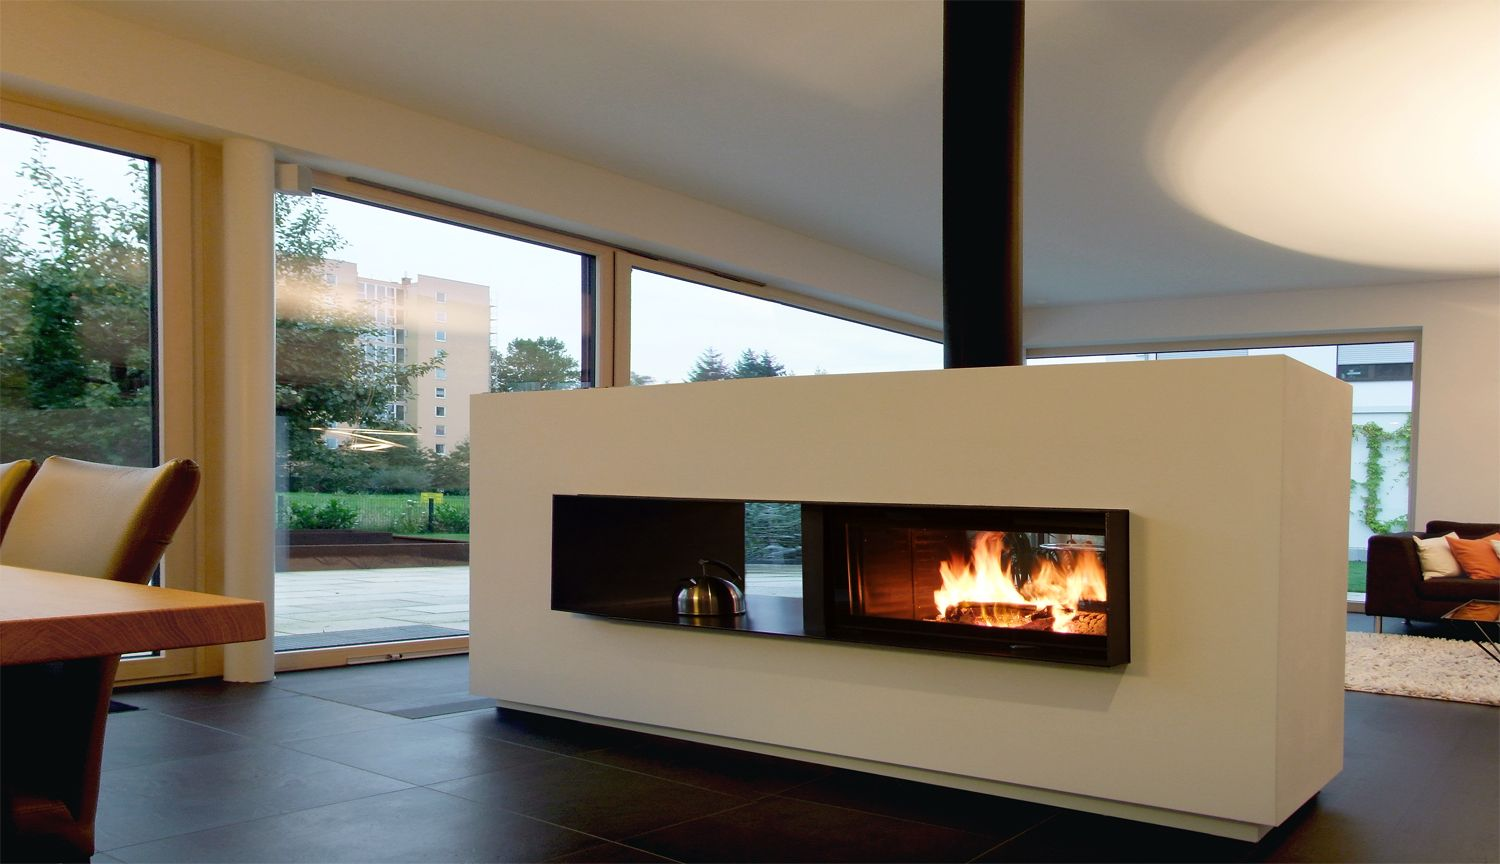 The Latest Modern Fireplaces Stoves Masonry Heaters And - Kamin Ideen